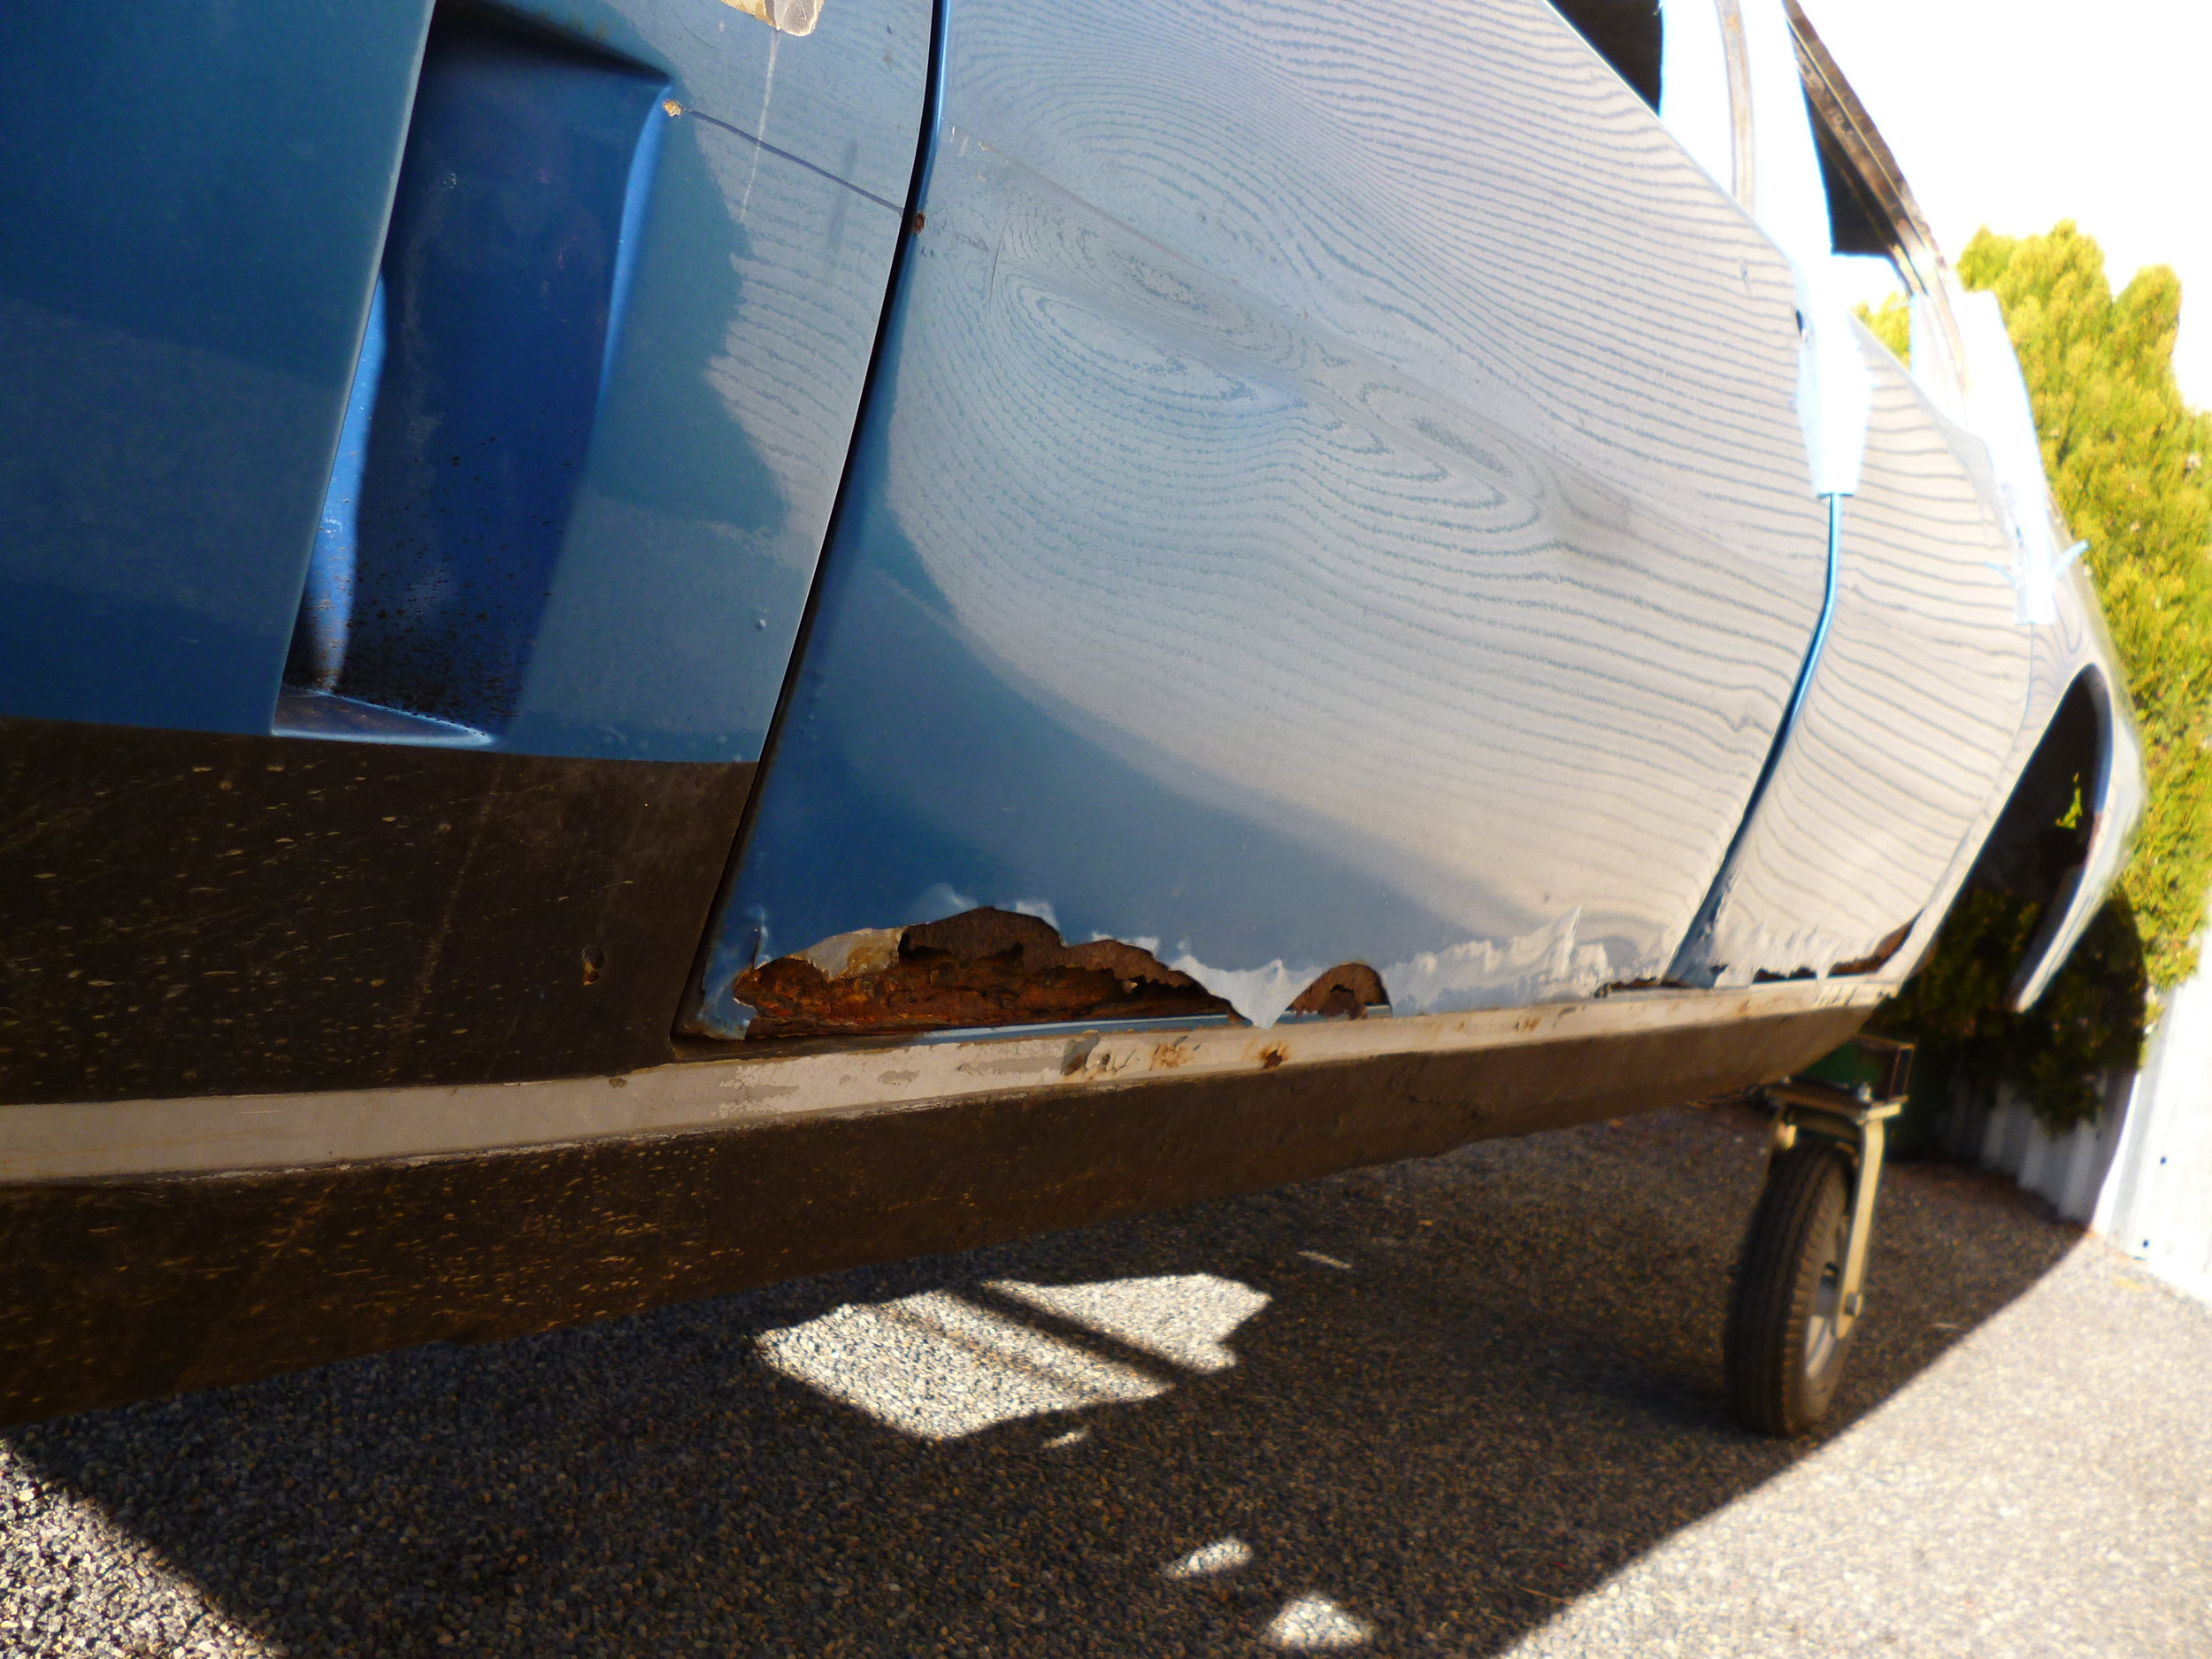 The rear guard panels have been removed to gain access to the inner rusted sections and to properly repair the exterior panels including the beaver panel. The rear section of the body is in such poor thin condition the rear of the vehicle is being repaired to stabilise prior to sandblasting.